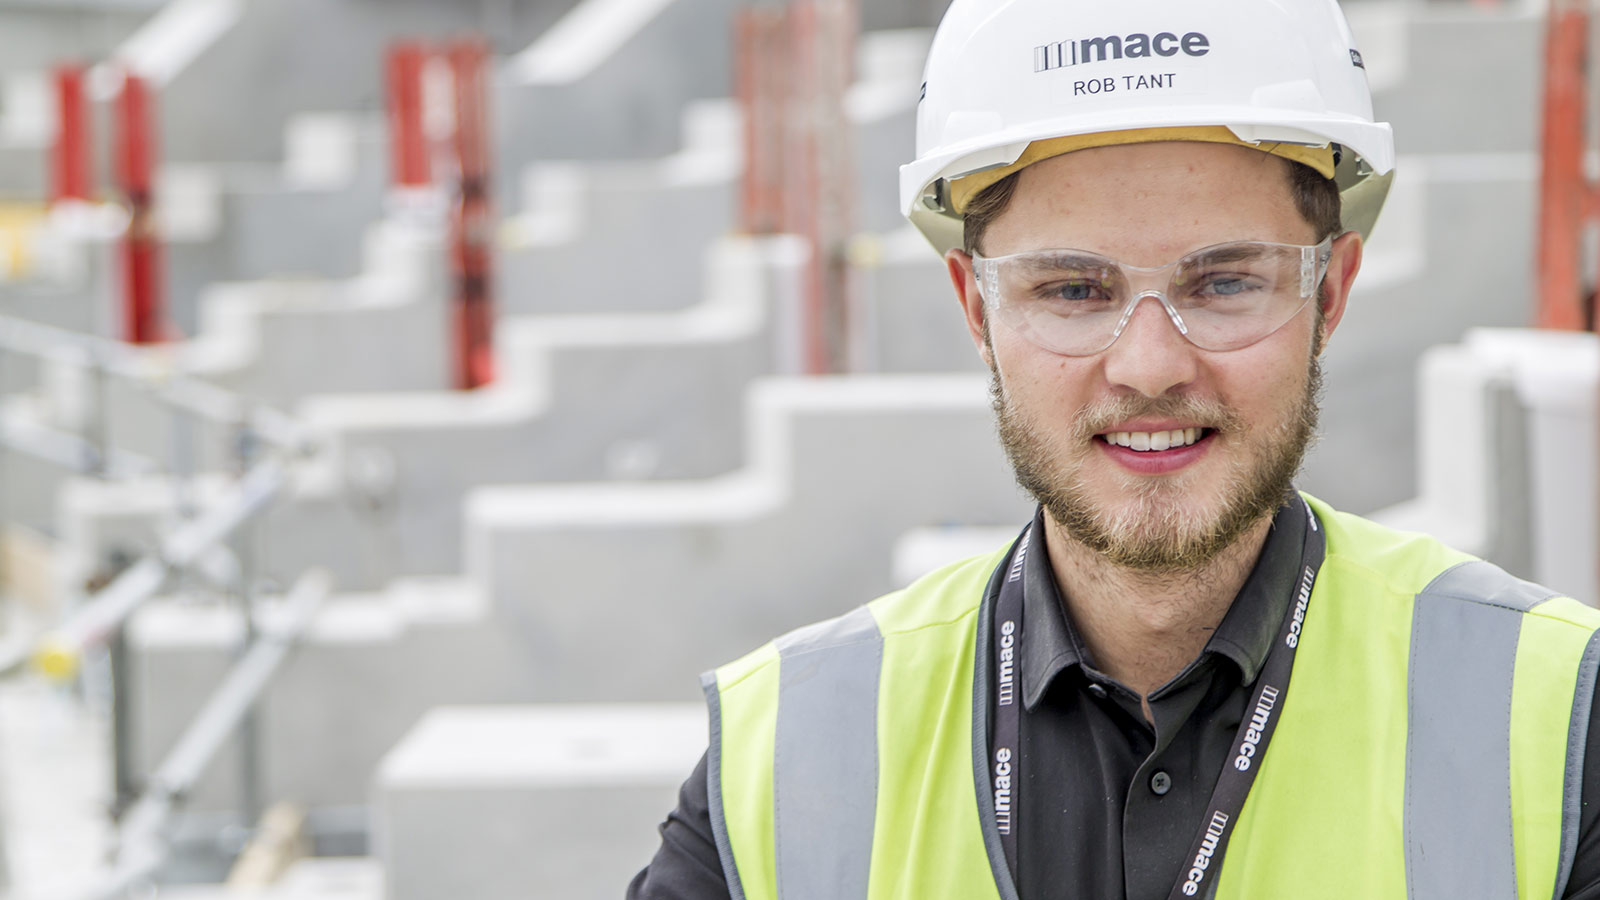 Rob Tant, Placement Trainee, Construction